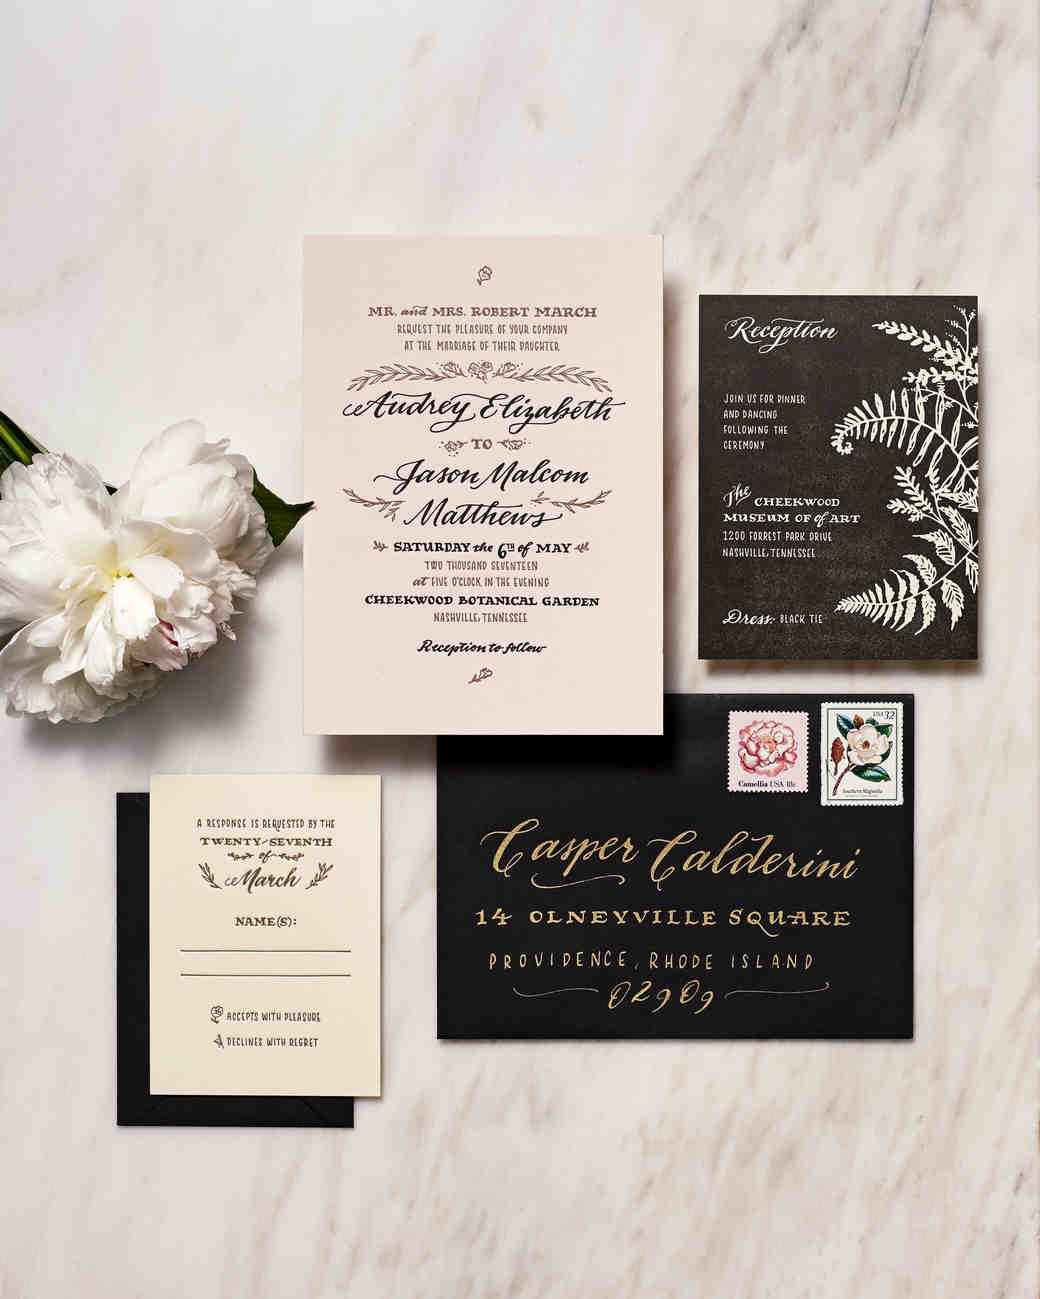 winter wedding invitations wedding invitations with pictures Get More Ideas for Decorating Your Wedding with Calligraphy